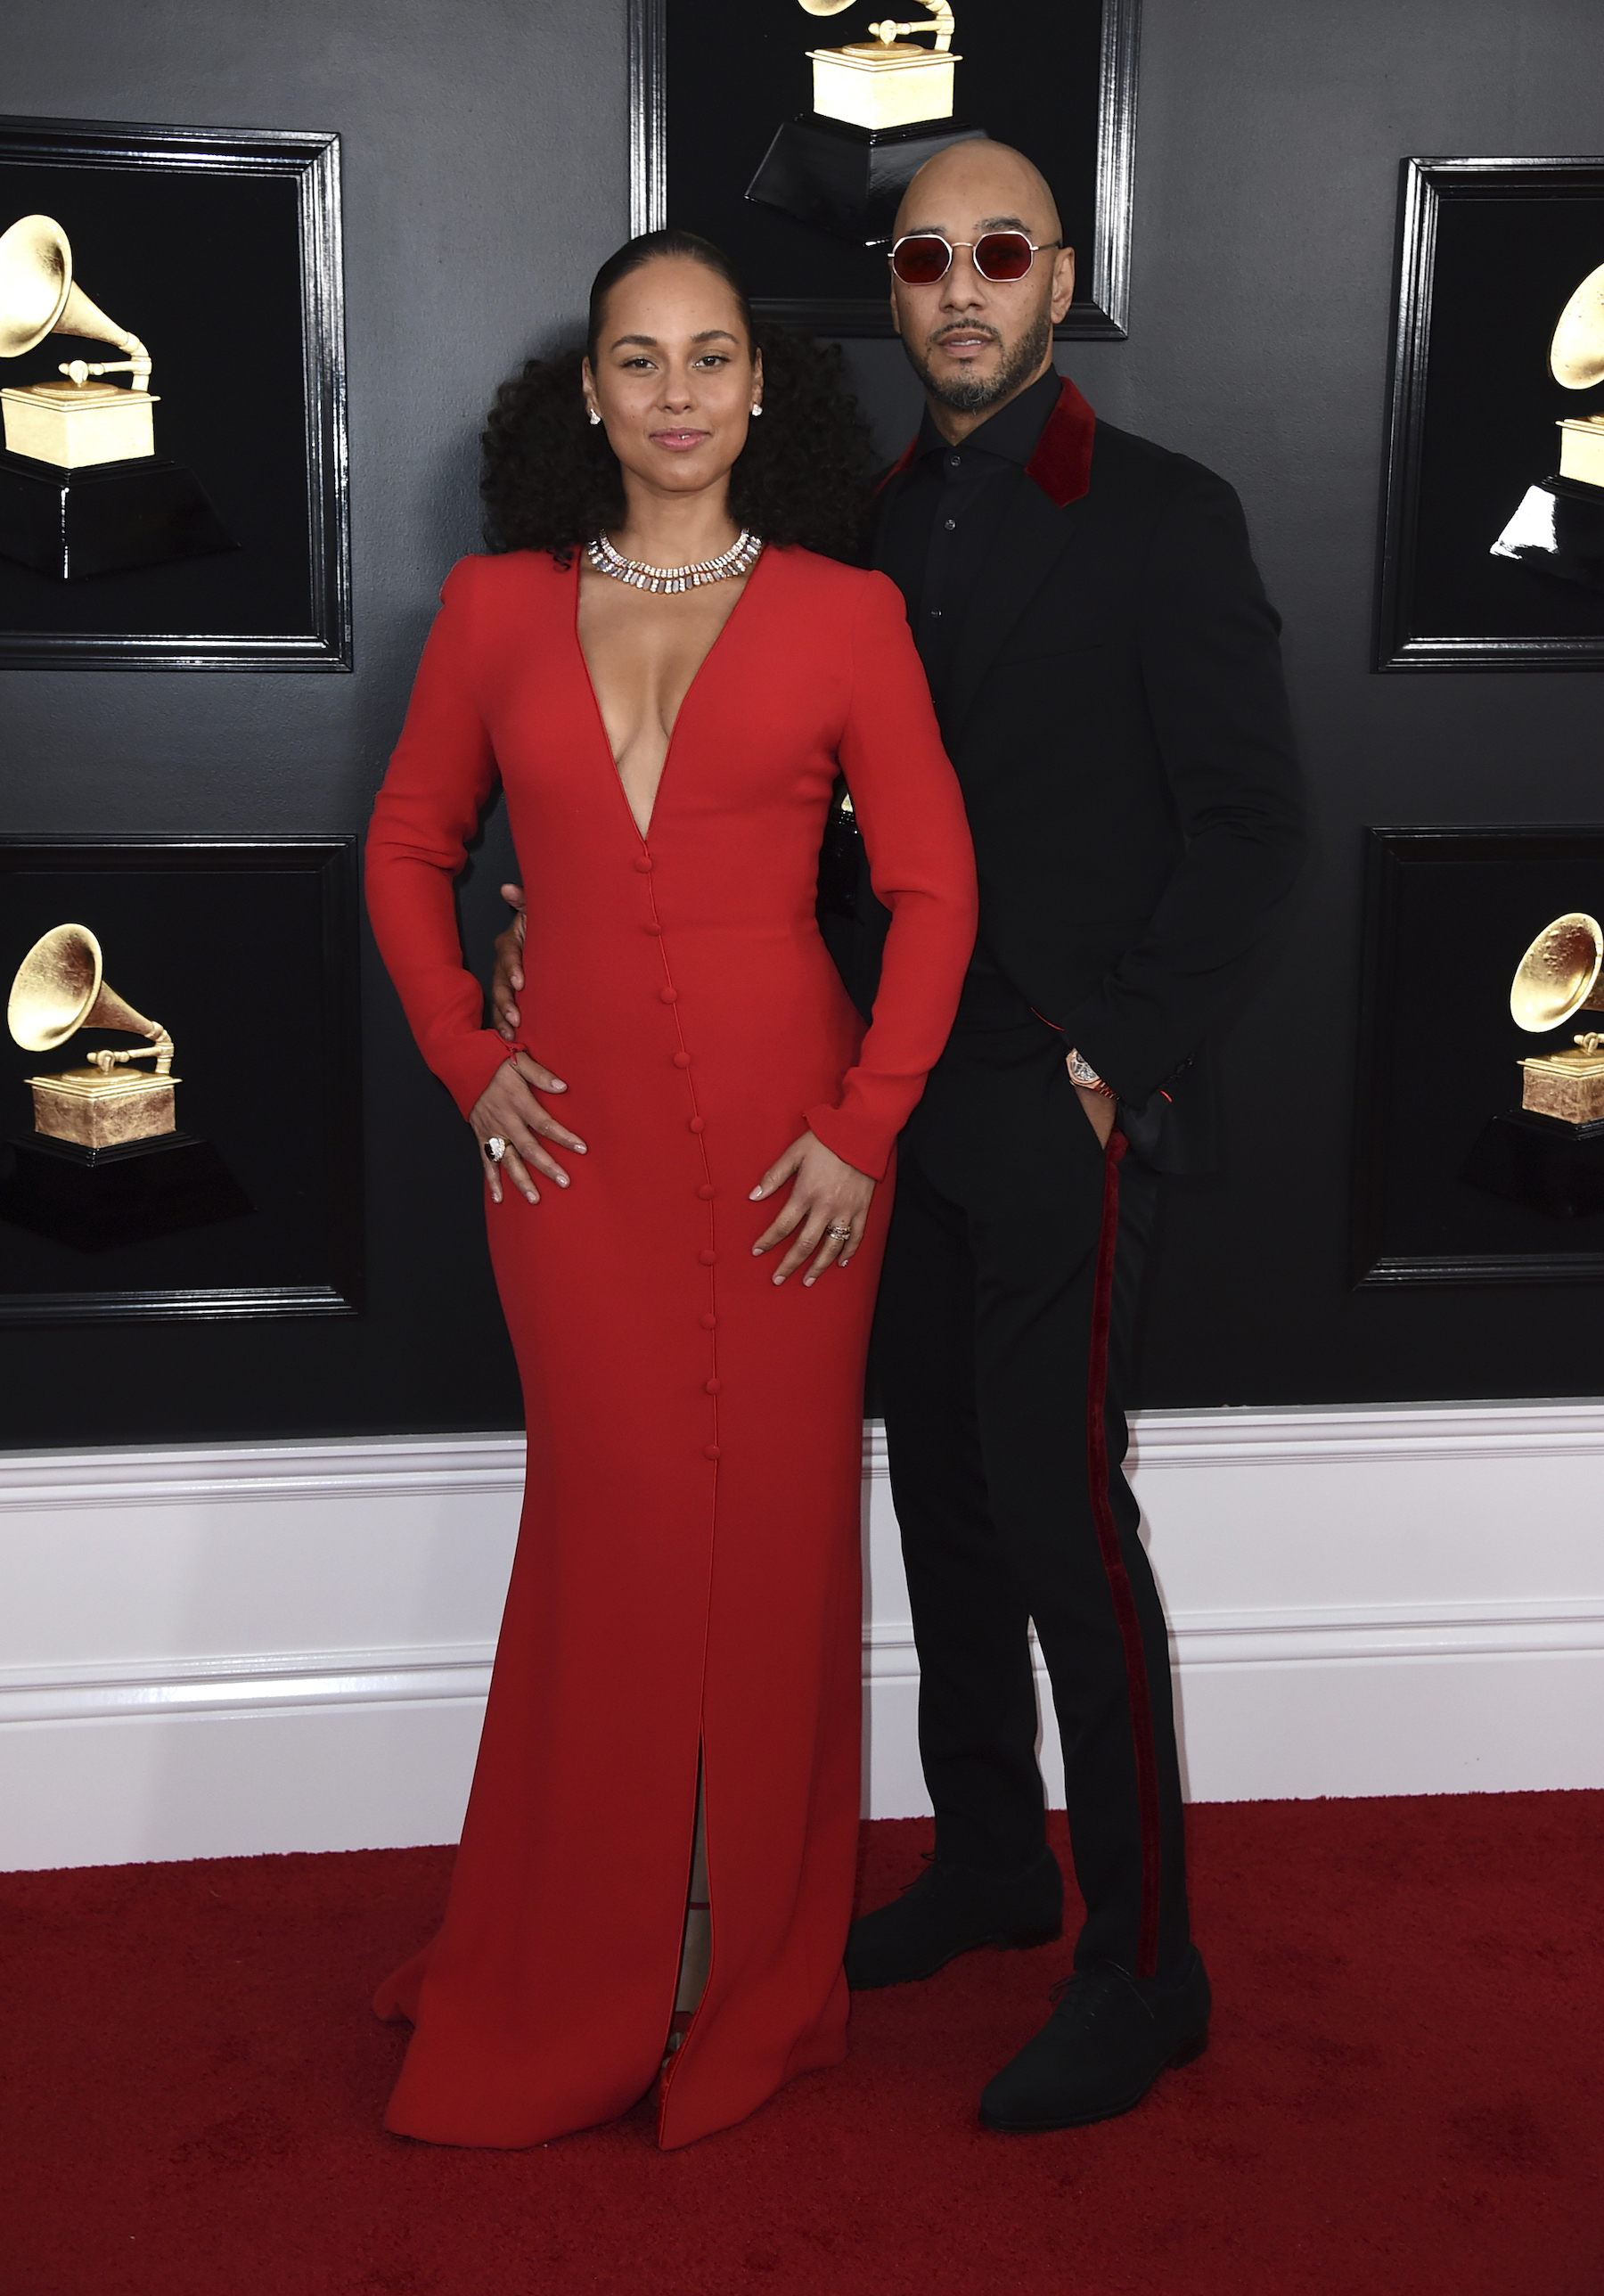 <div class='meta'><div class='origin-logo' data-origin='AP'></div><span class='caption-text' data-credit='Jordan Strauss/Invision/AP'>Alicia Keys, left, and Swizz Beatz arrive at the 61st annual Grammy Awards at the Staples Center on Sunday, Feb. 10, 2019, in Los Angeles.</span></div>